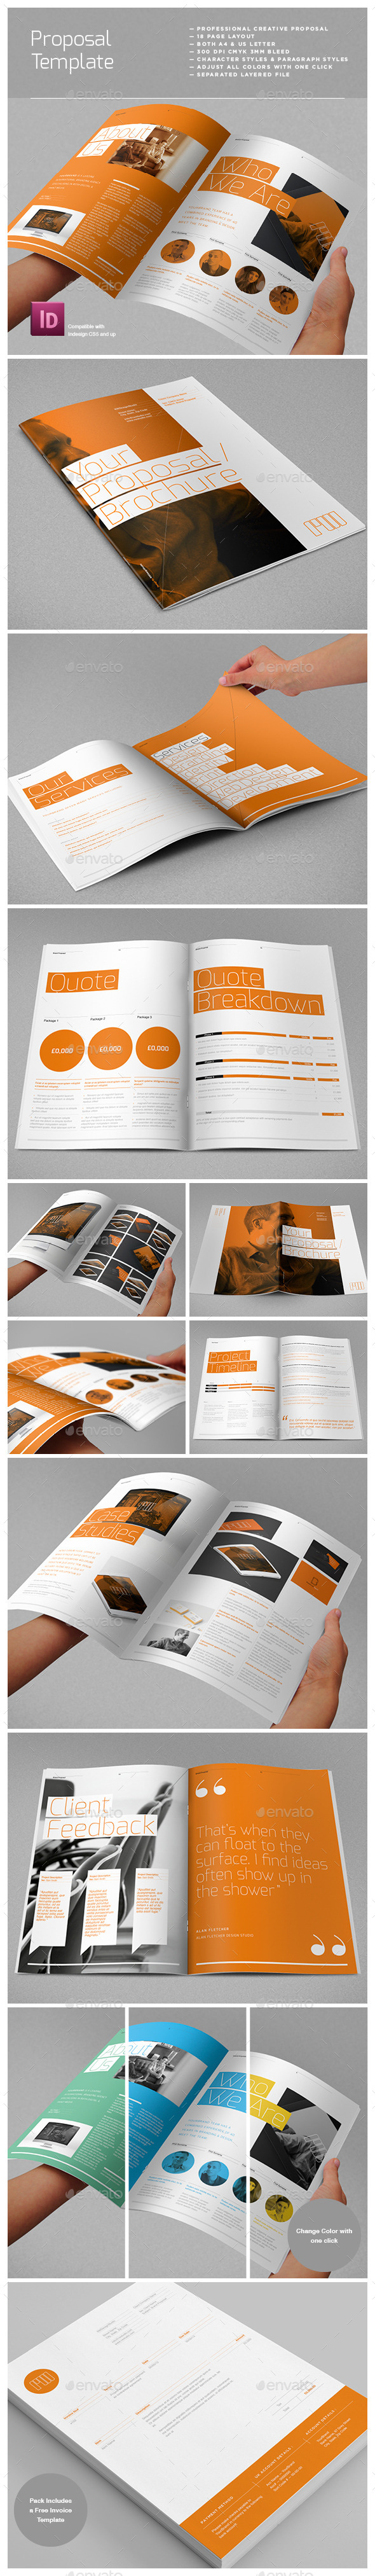 Graphicriver | Agency Proposal Template Free Download free download Graphicriver | Agency Proposal Template Free Download nulled Graphicriver | Agency Proposal Template Free Download